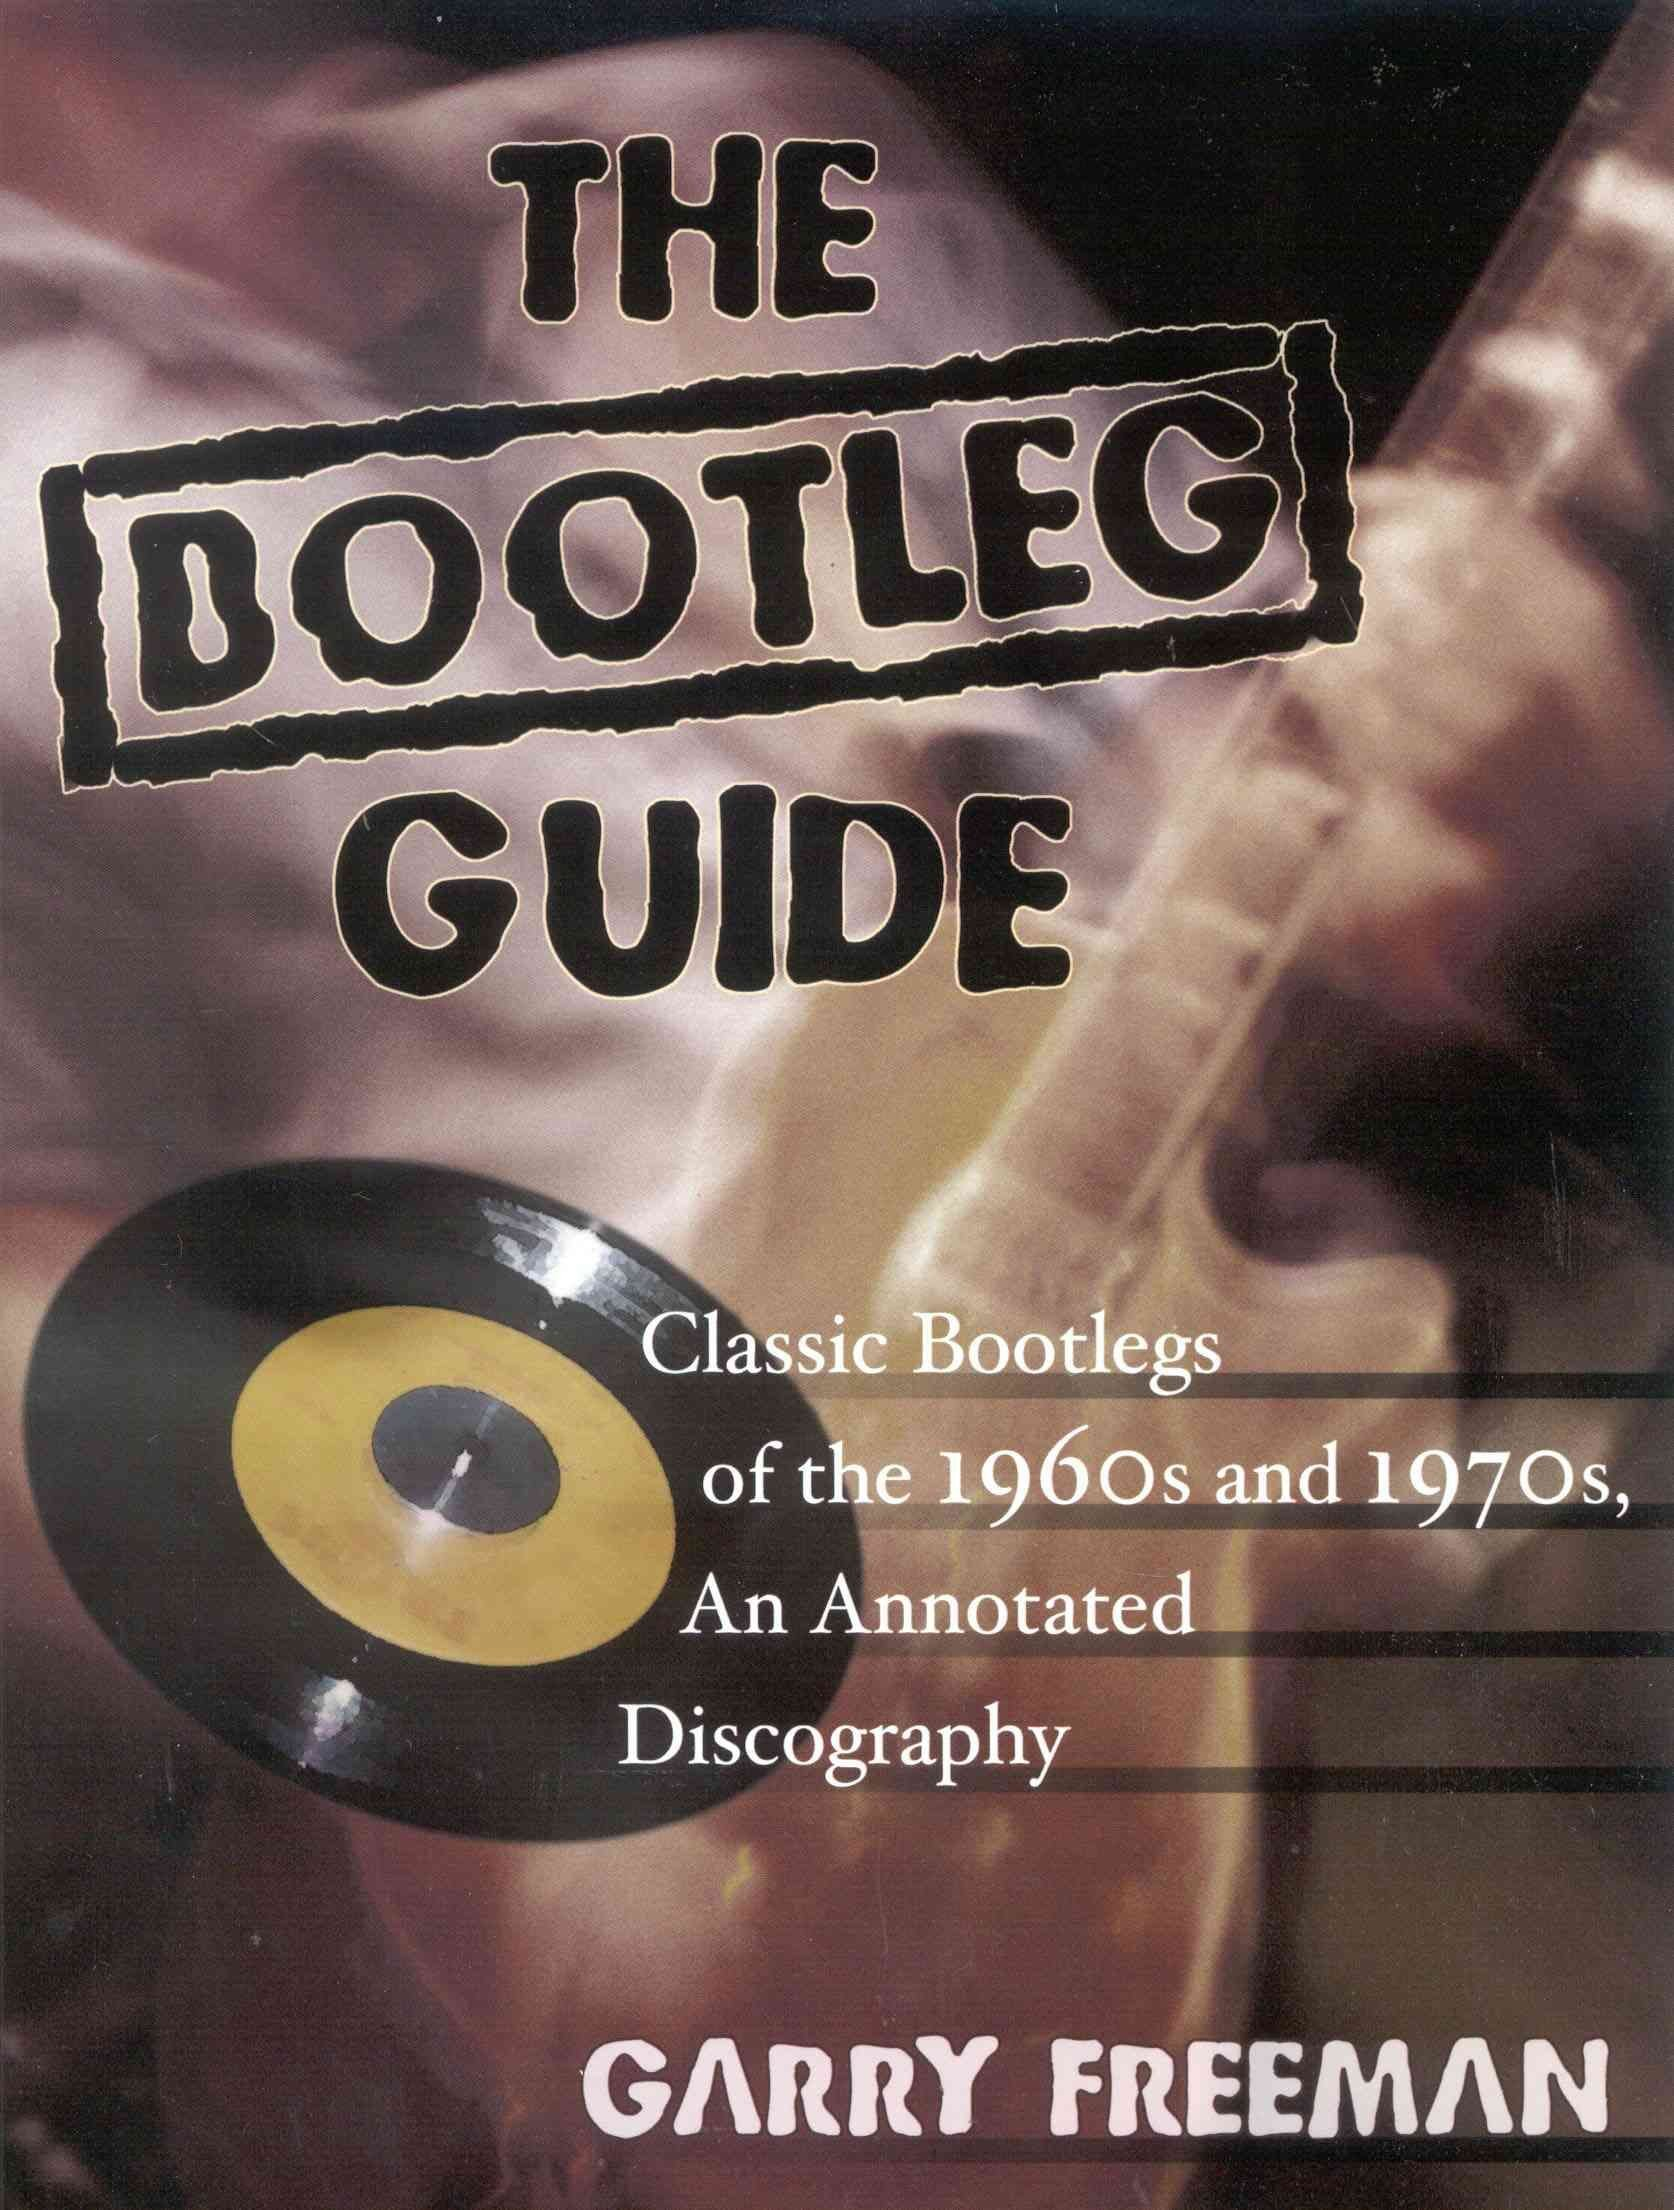 The Bootleg Guide